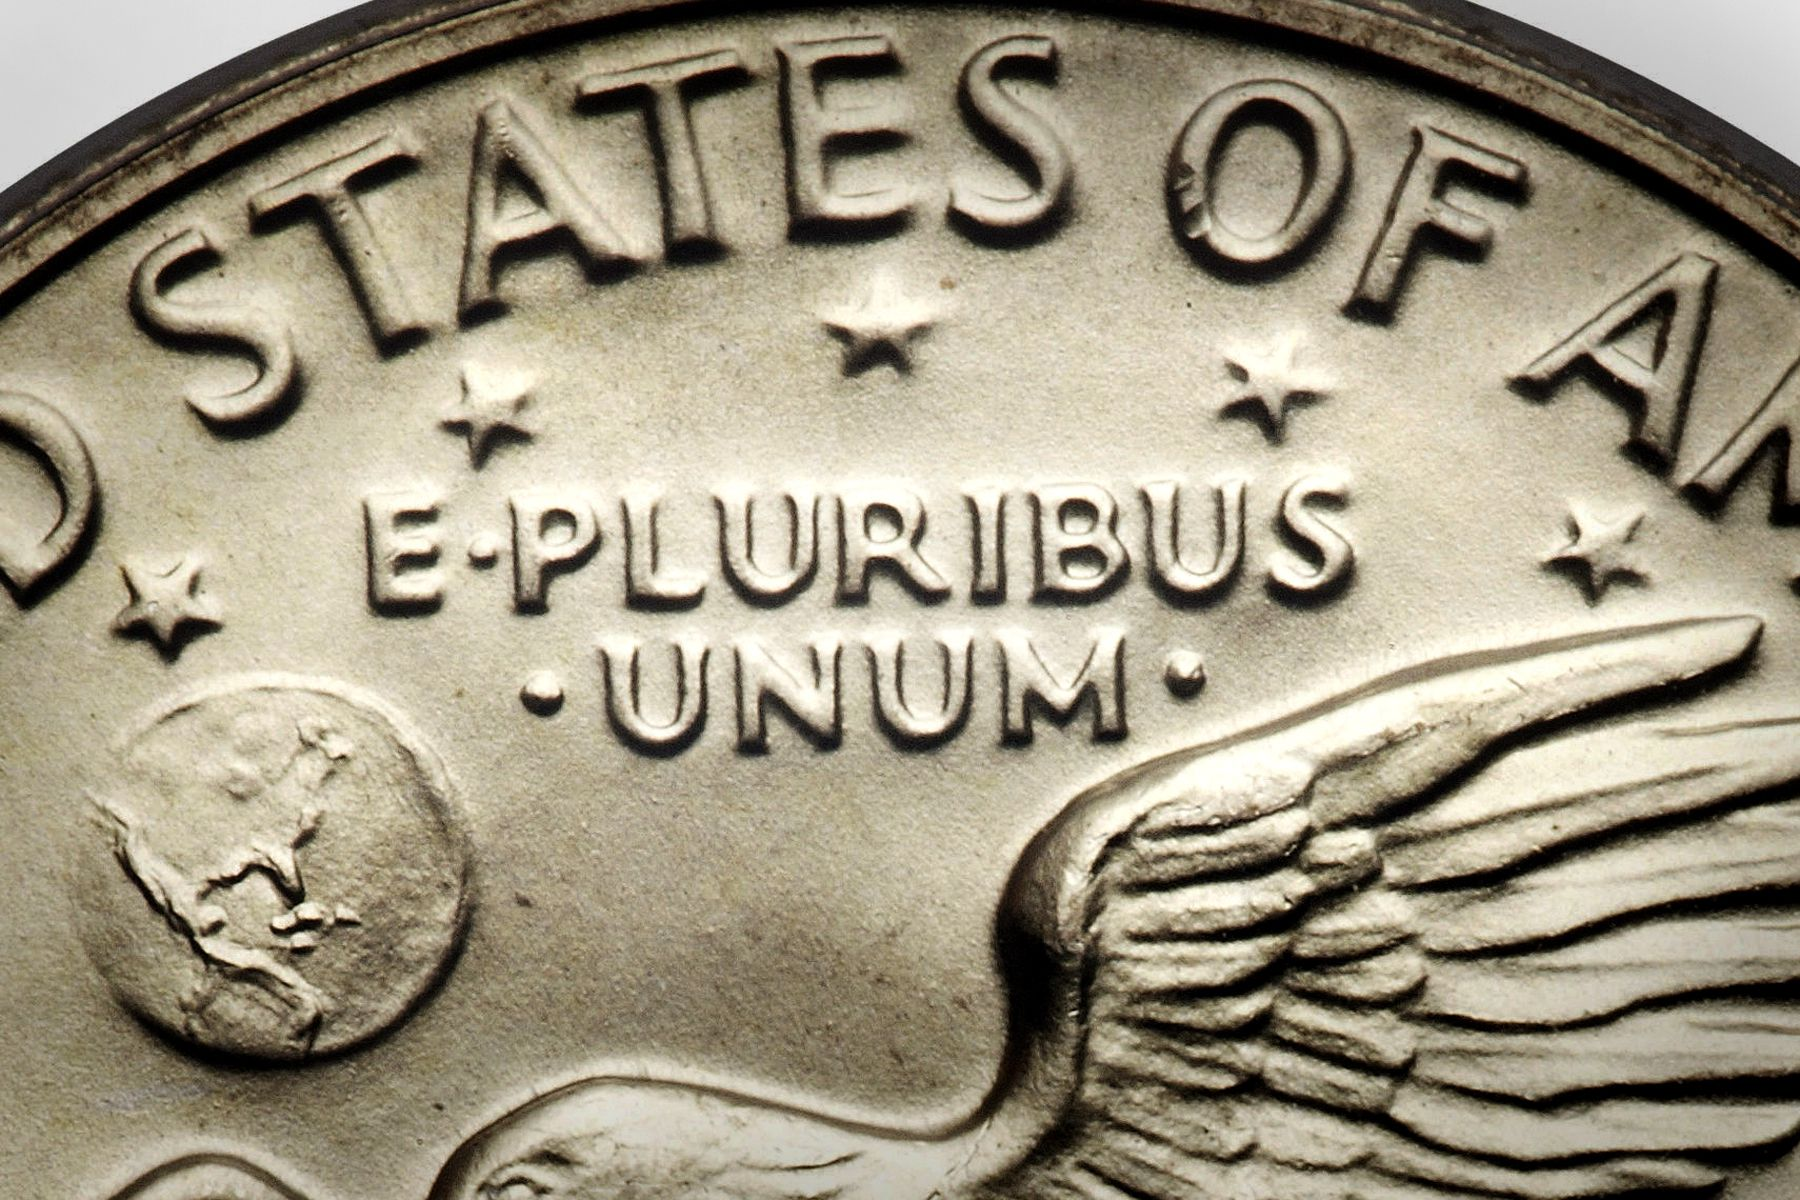 what does e pluribus unum mean on a coin